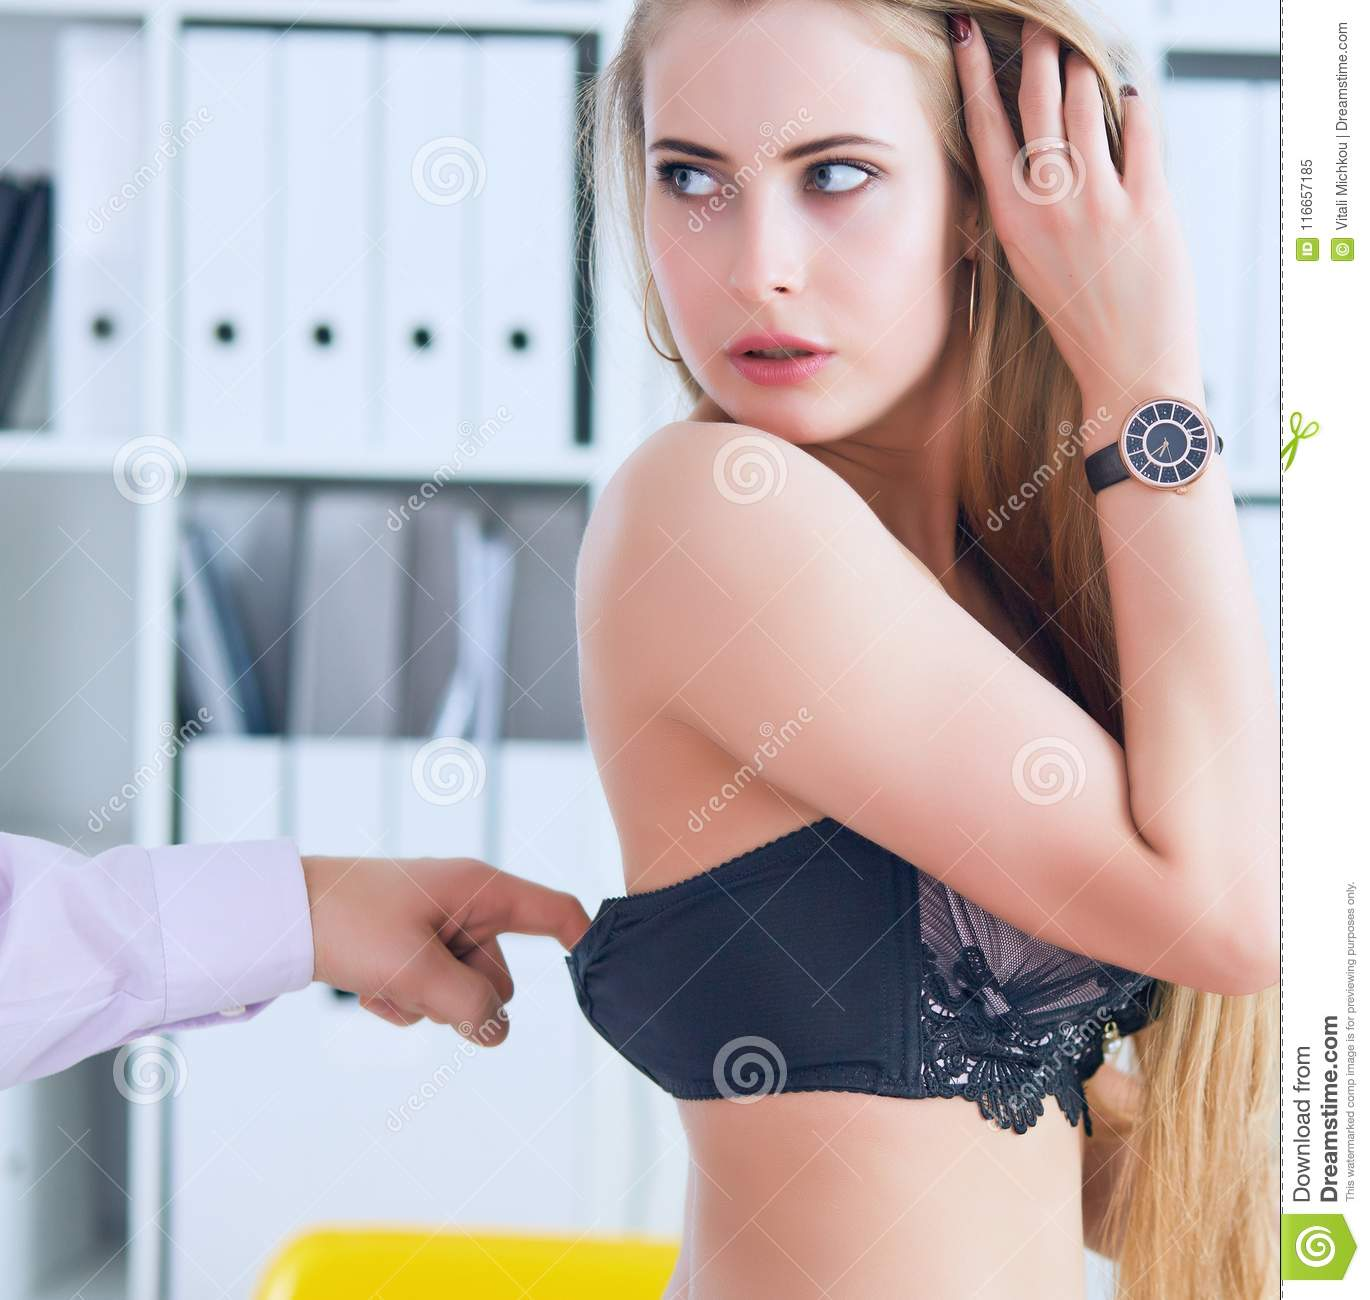 Man`s hand pulls bra out of the beauitiful secretary in office background. Flirt or harassment concept.